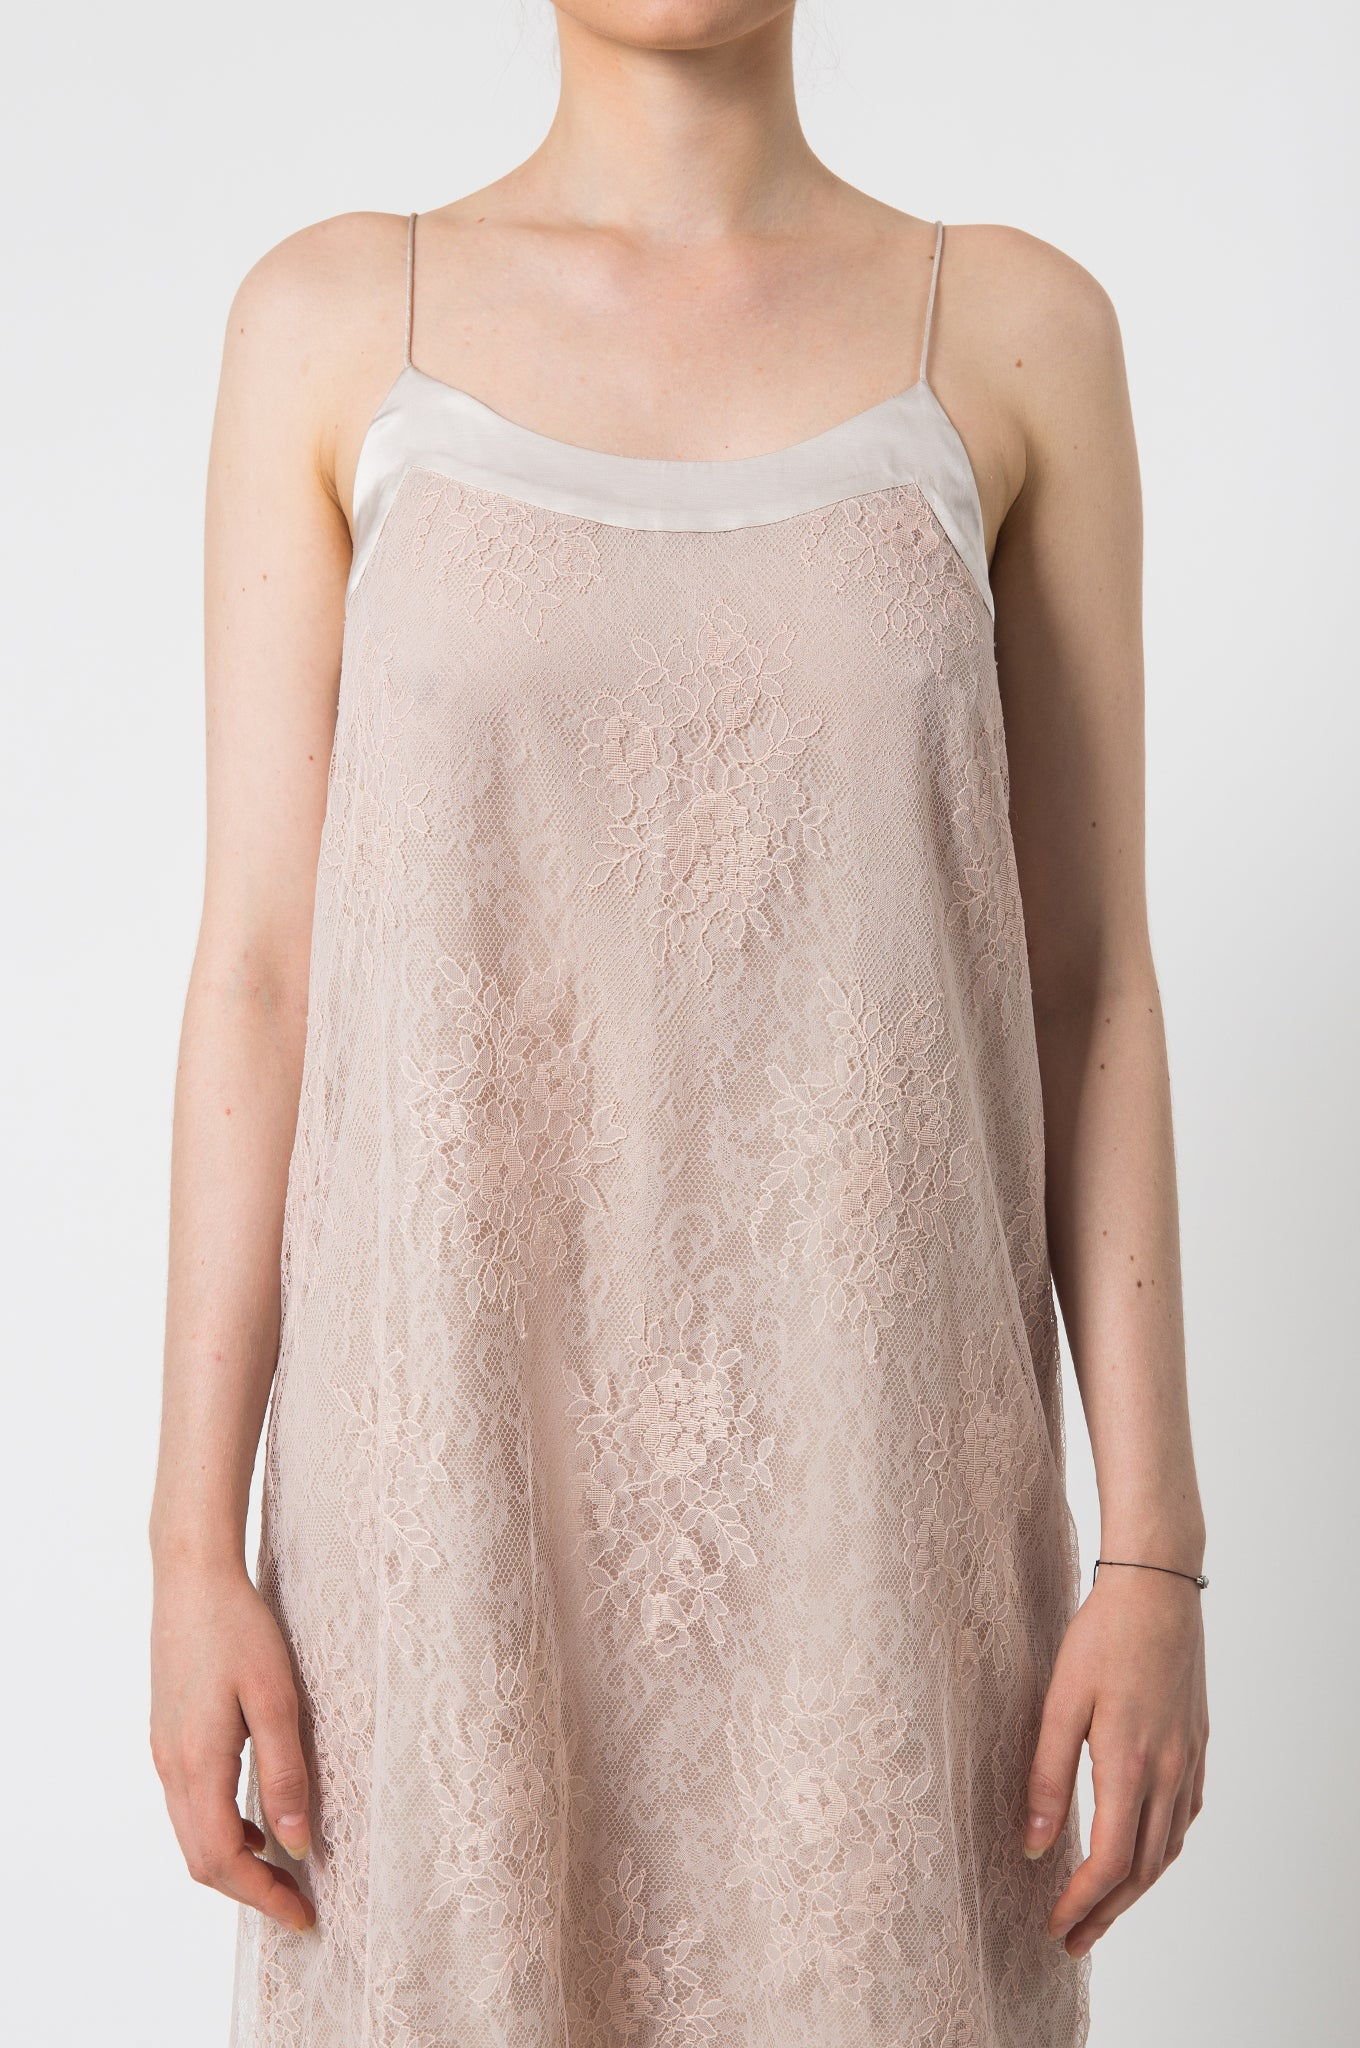 Blush Lace Camisole Dress